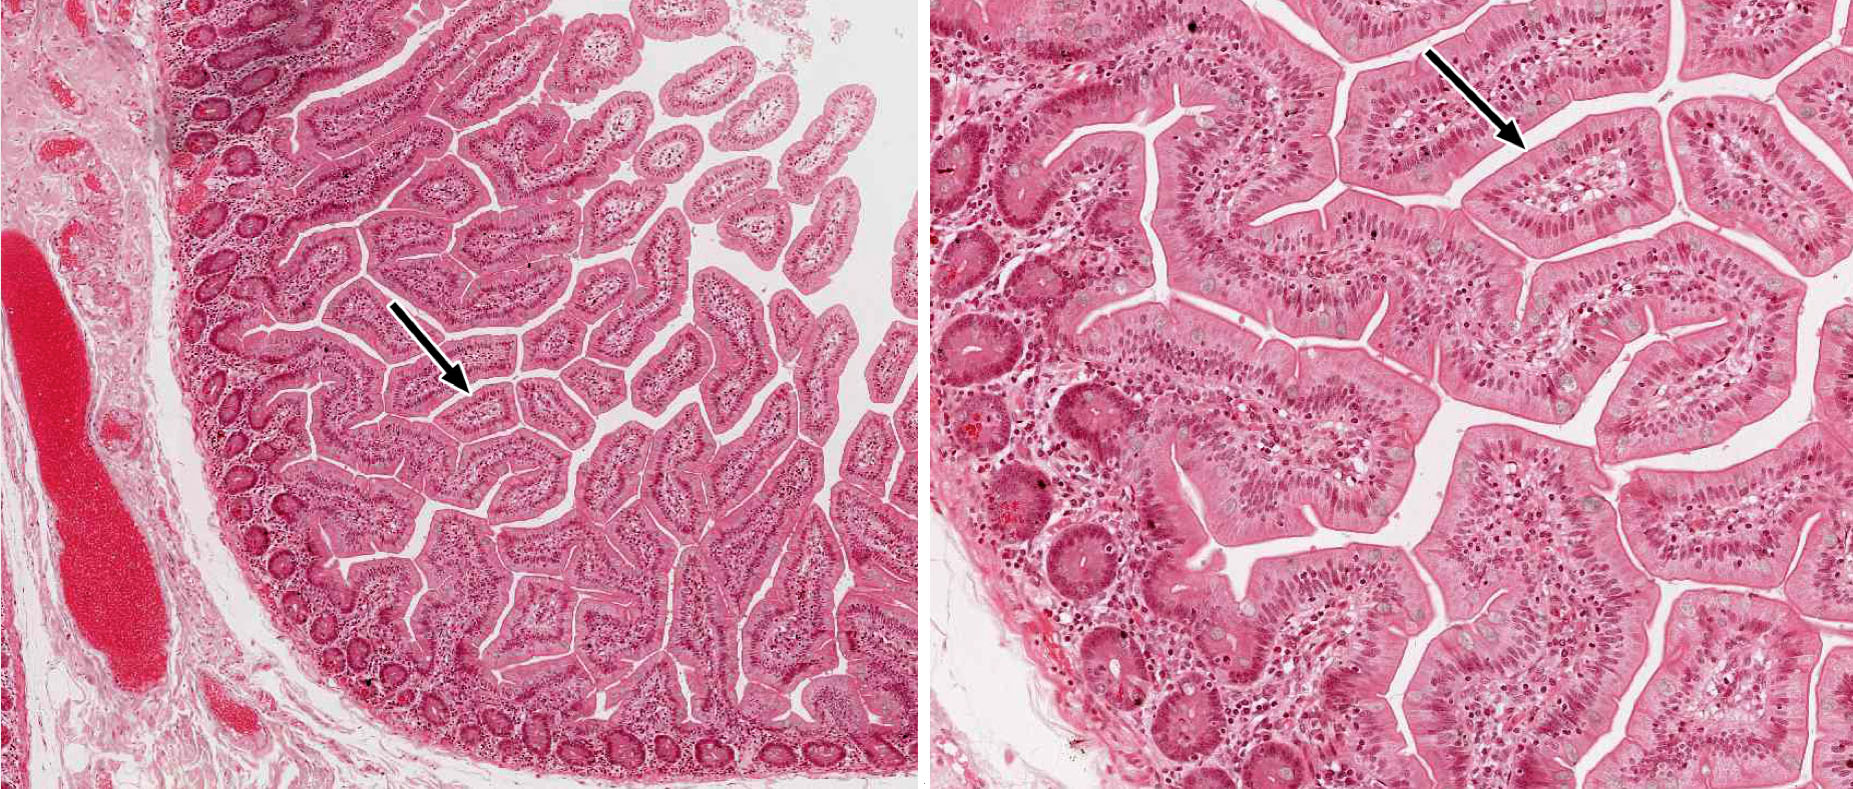 Small And Large Intestine Histology Simple Animal Cell Diagram Labeled 2 Practice Questions